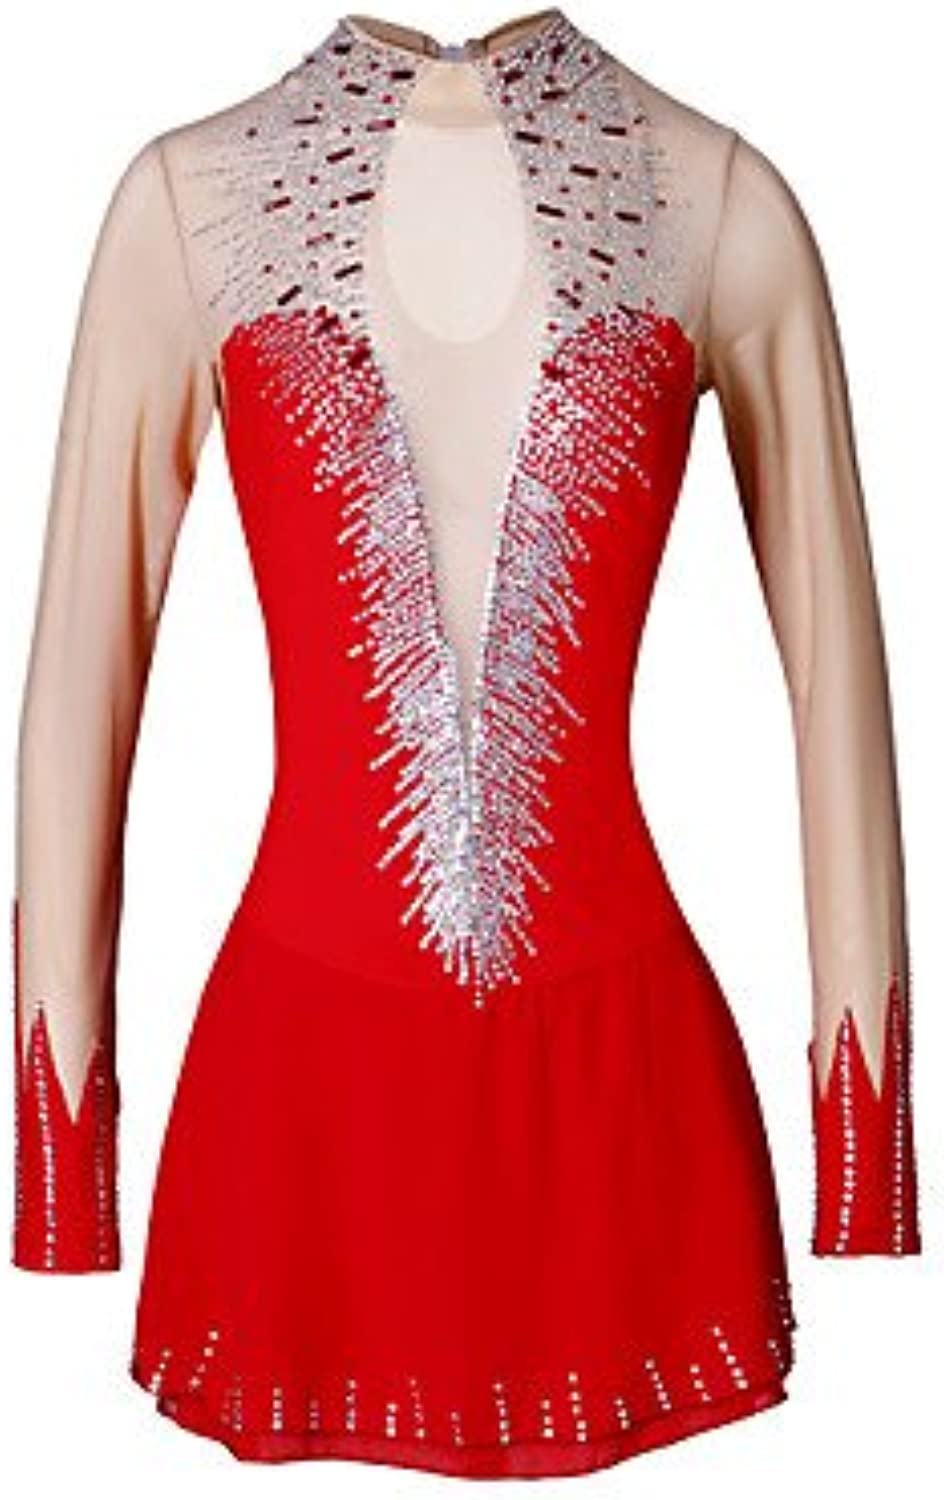 Heart&M Handmade Ice Skating Dress for Girls Women Figure Skating Competition Costume Elastic Long Sleeved Red